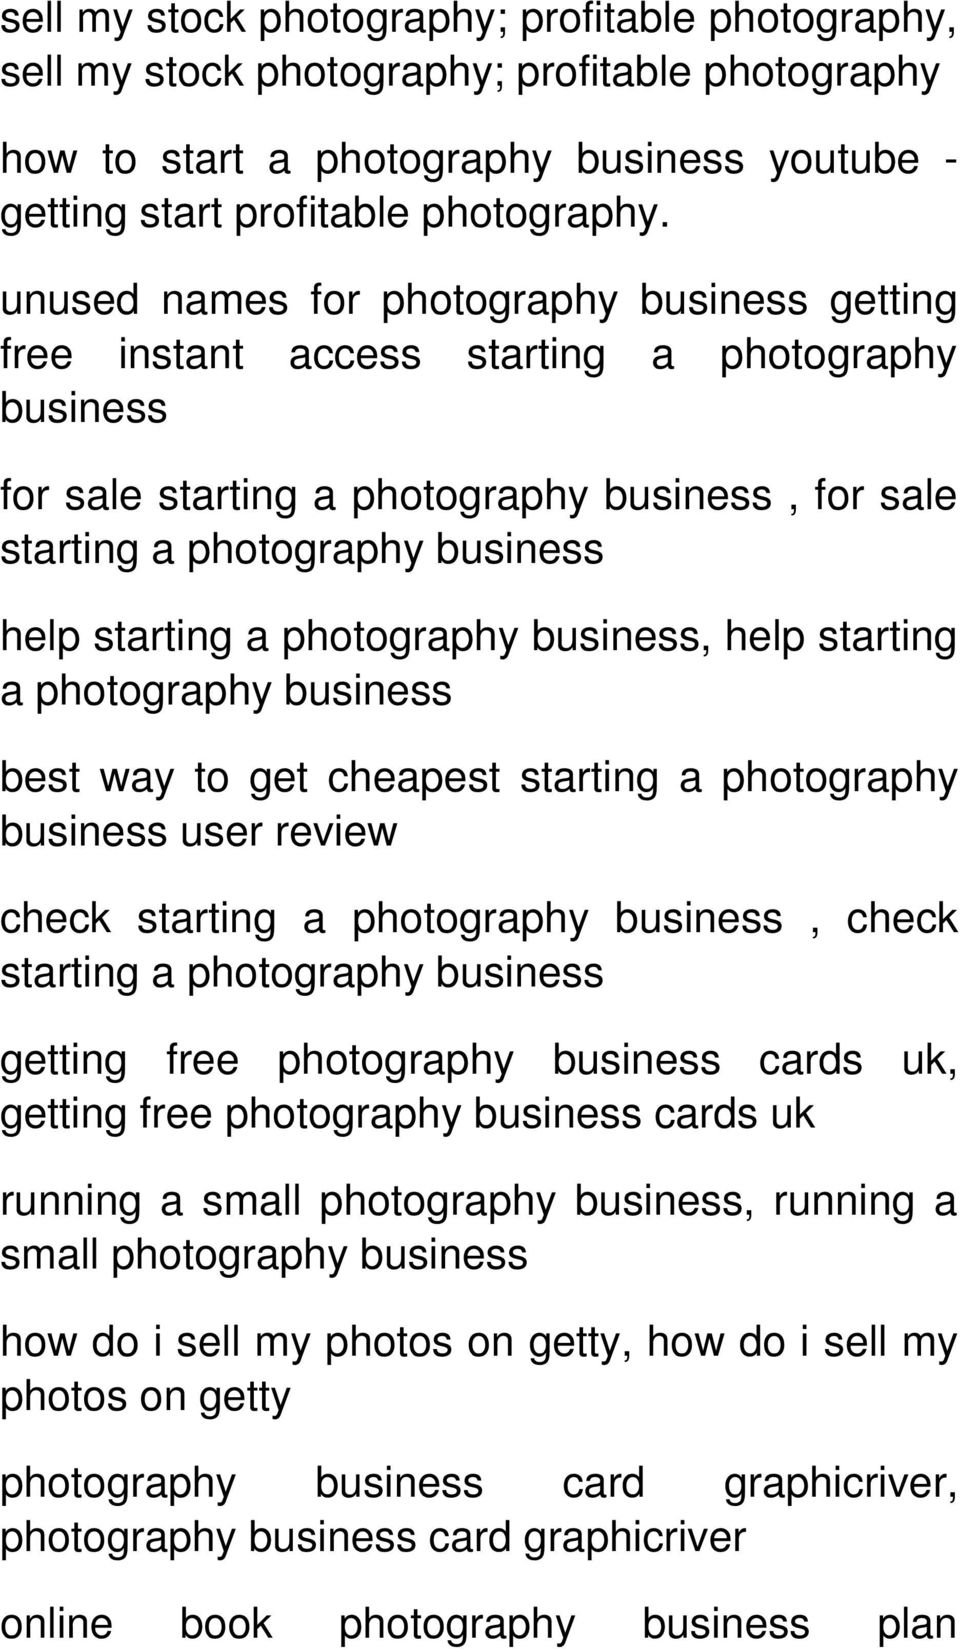 unused names for getting free instant access starting a photography business for sale starting a, for sale starting a help starting a, help starting a